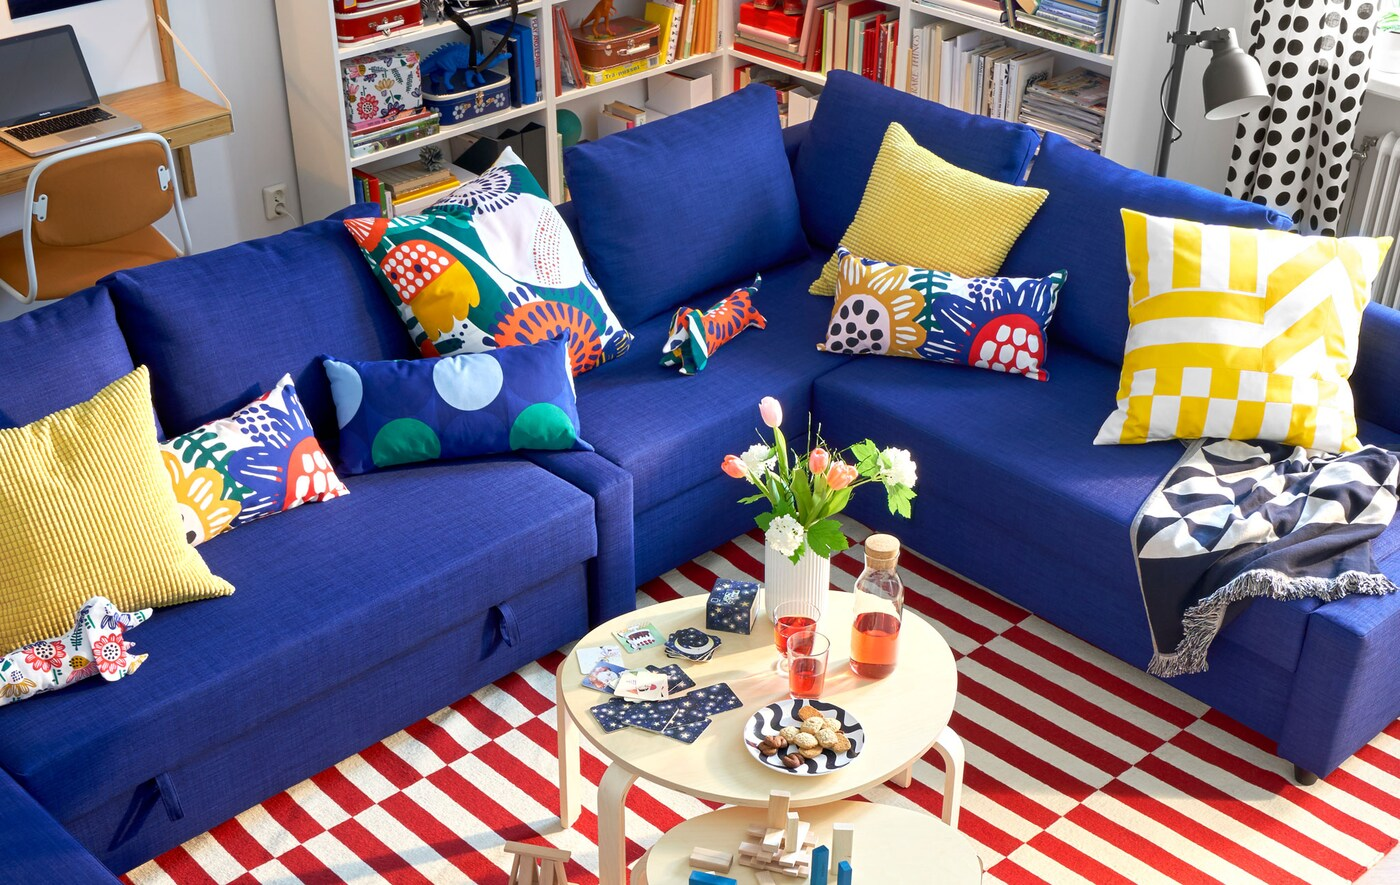 Link to IDEA blog 'Adapting a small home as your family grows' - image of living space with a royal blue FRIHETEN corner sofa and colourful textiles.